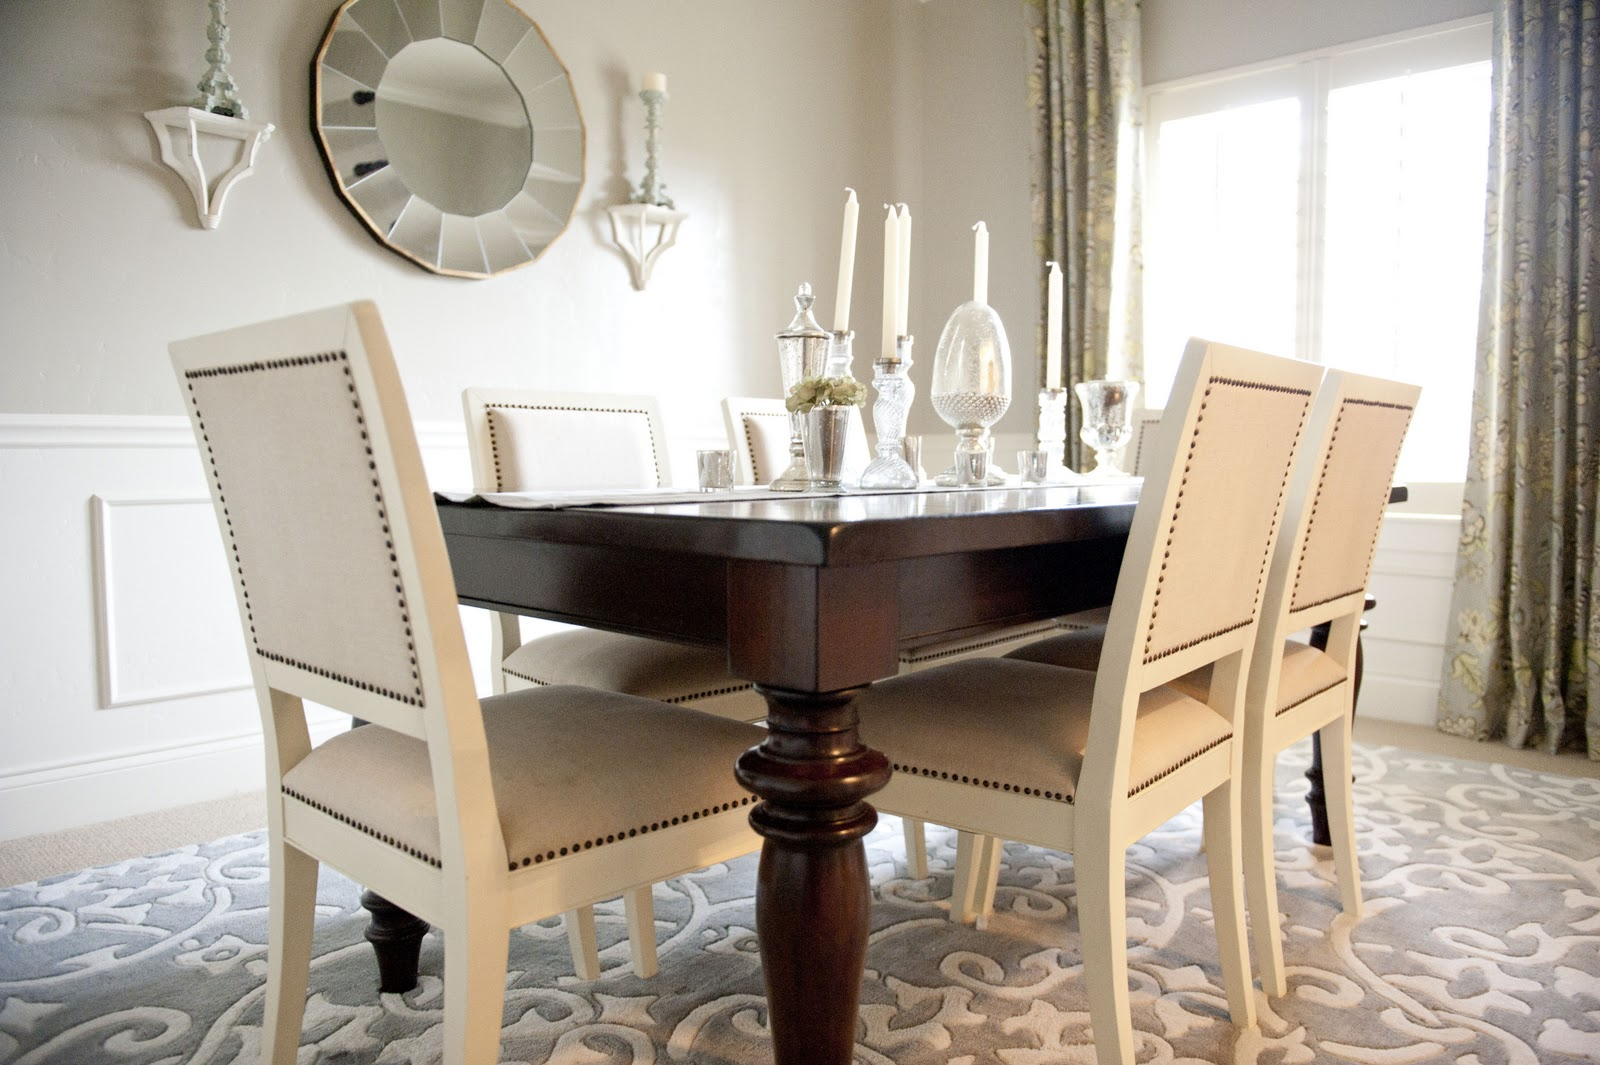 sita montgomery interiors my home tour entry and dining room. Black Bedroom Furniture Sets. Home Design Ideas